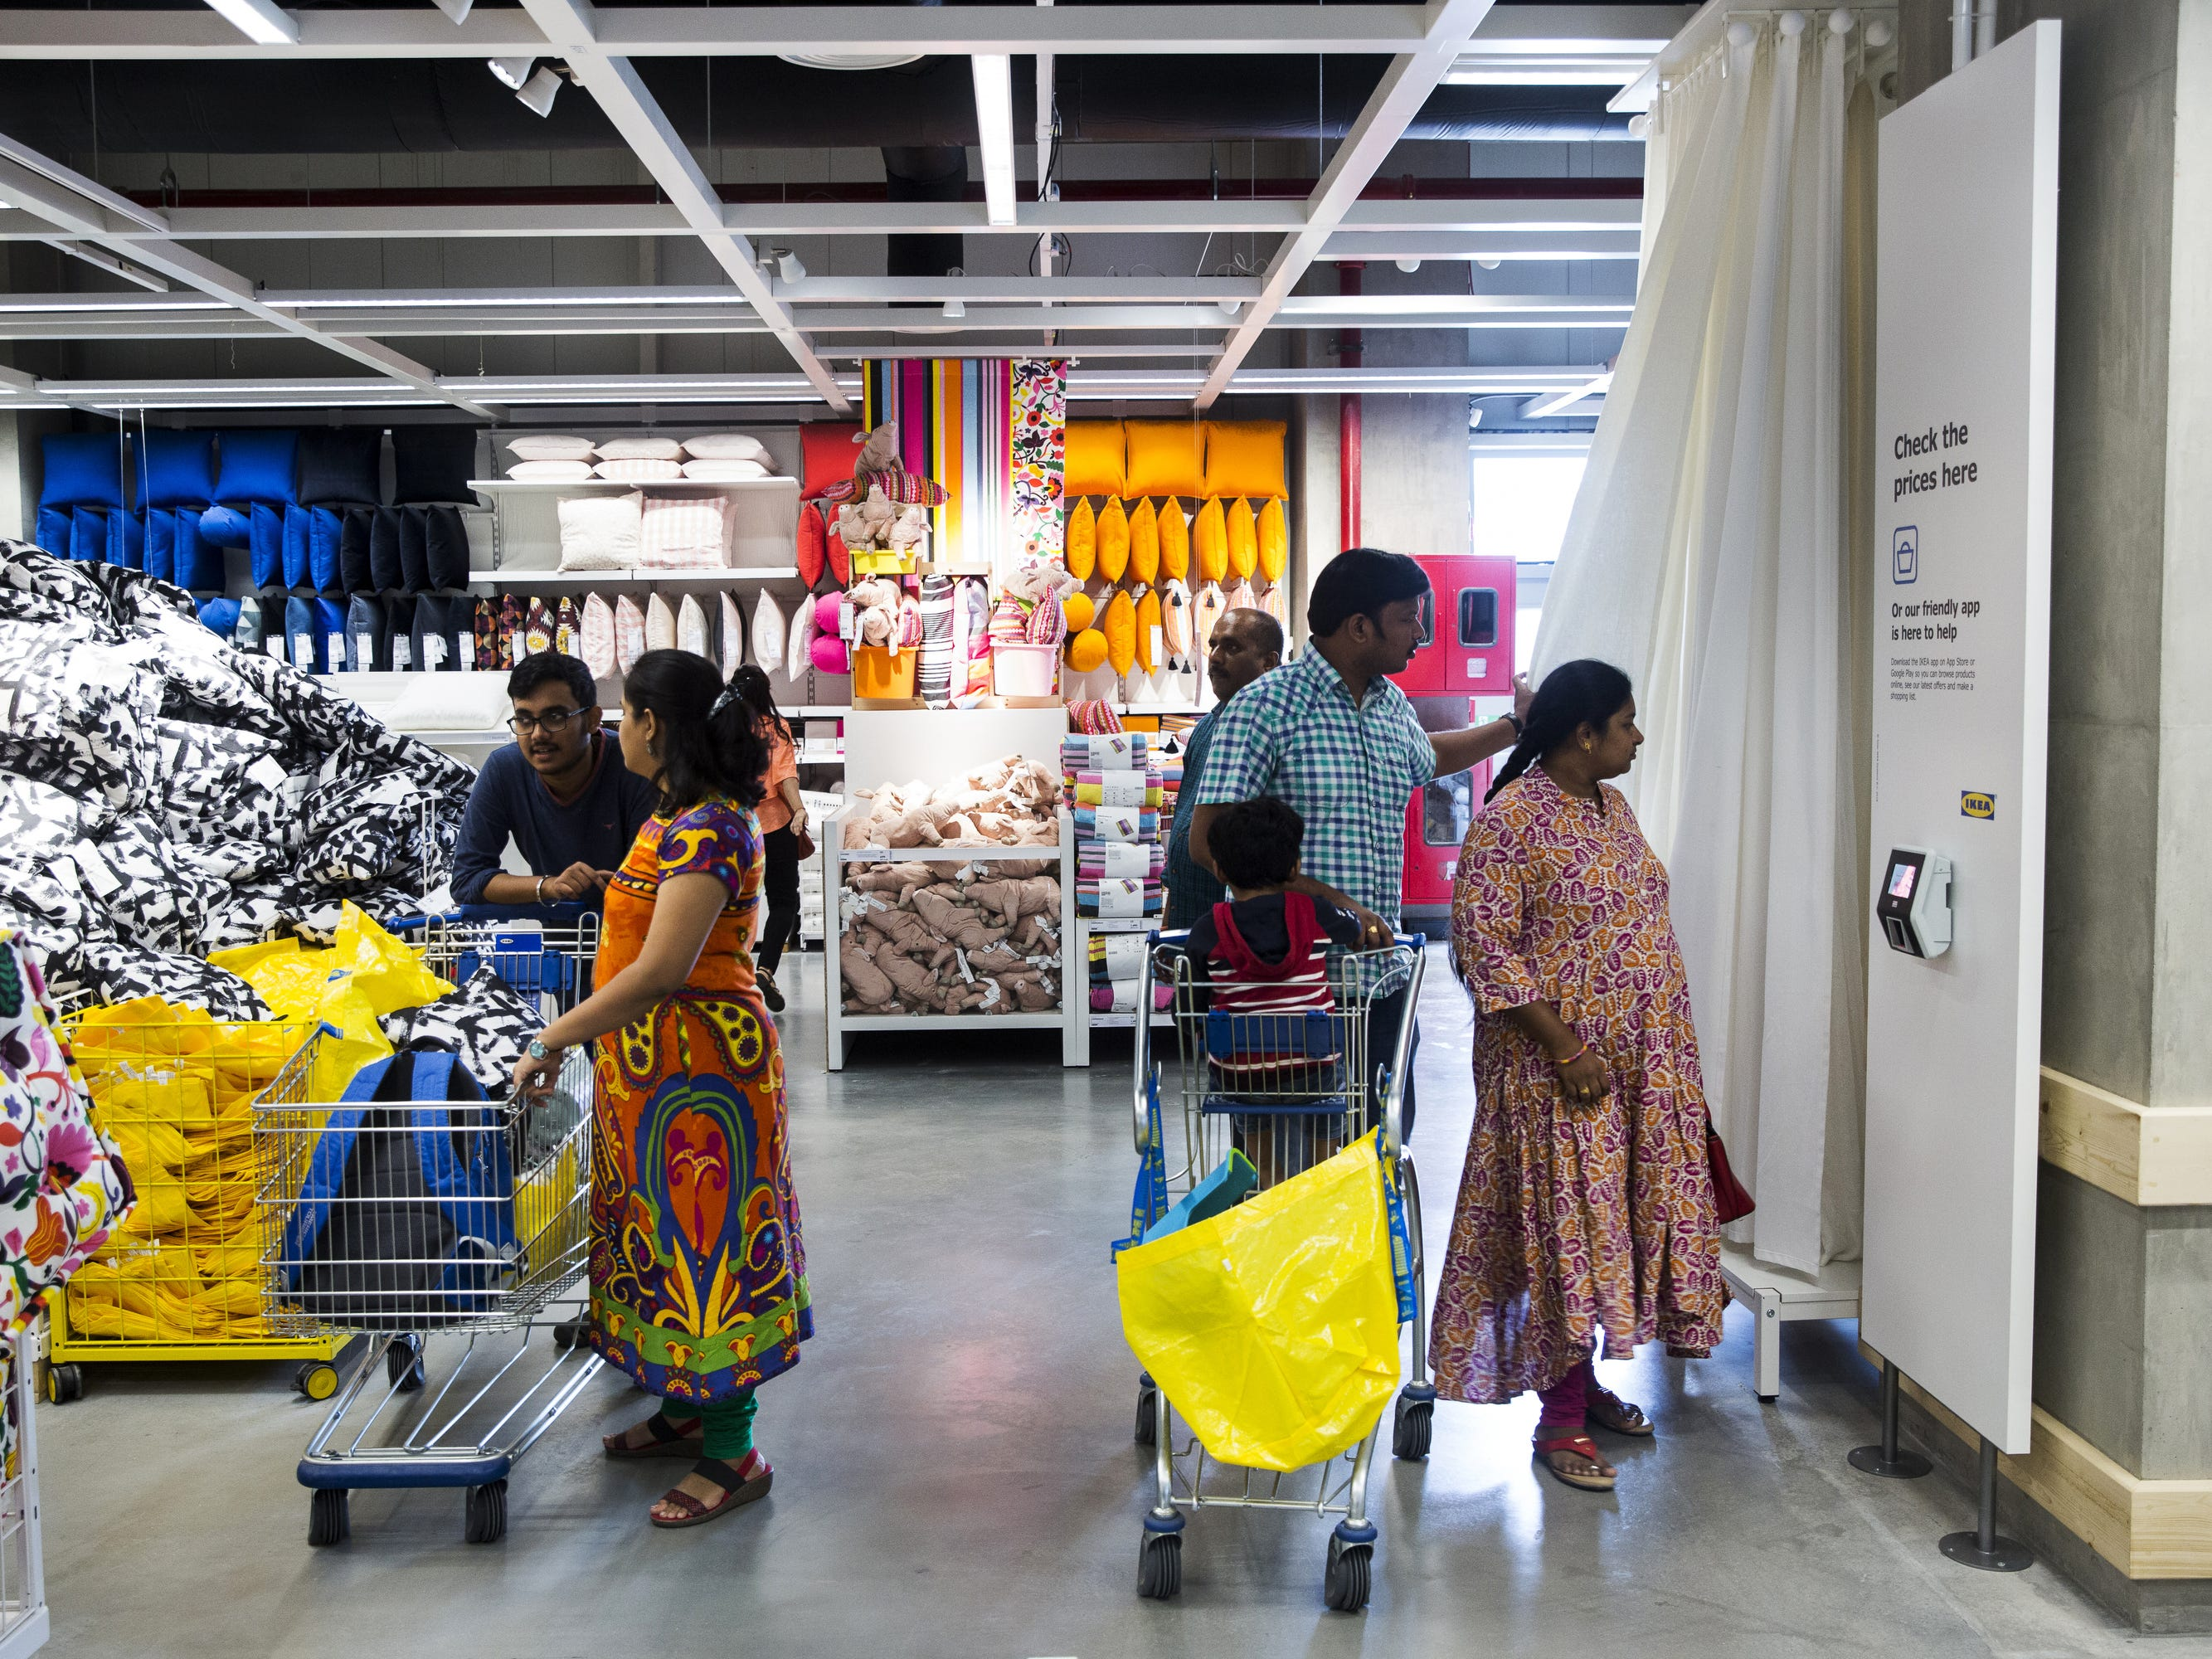 Customers walk past cushions on display inside the Ikea store in Hitech City on the outskirts of Hyderabad, India, on Thursday, Aug. 9, 2018. Ikea's blue-and-yellow stores are instantly recognizable: iconic, monolithic and now, asIndia's first storethrows open its doors to the masses today, operating in more than 400 stores in some 50countries.